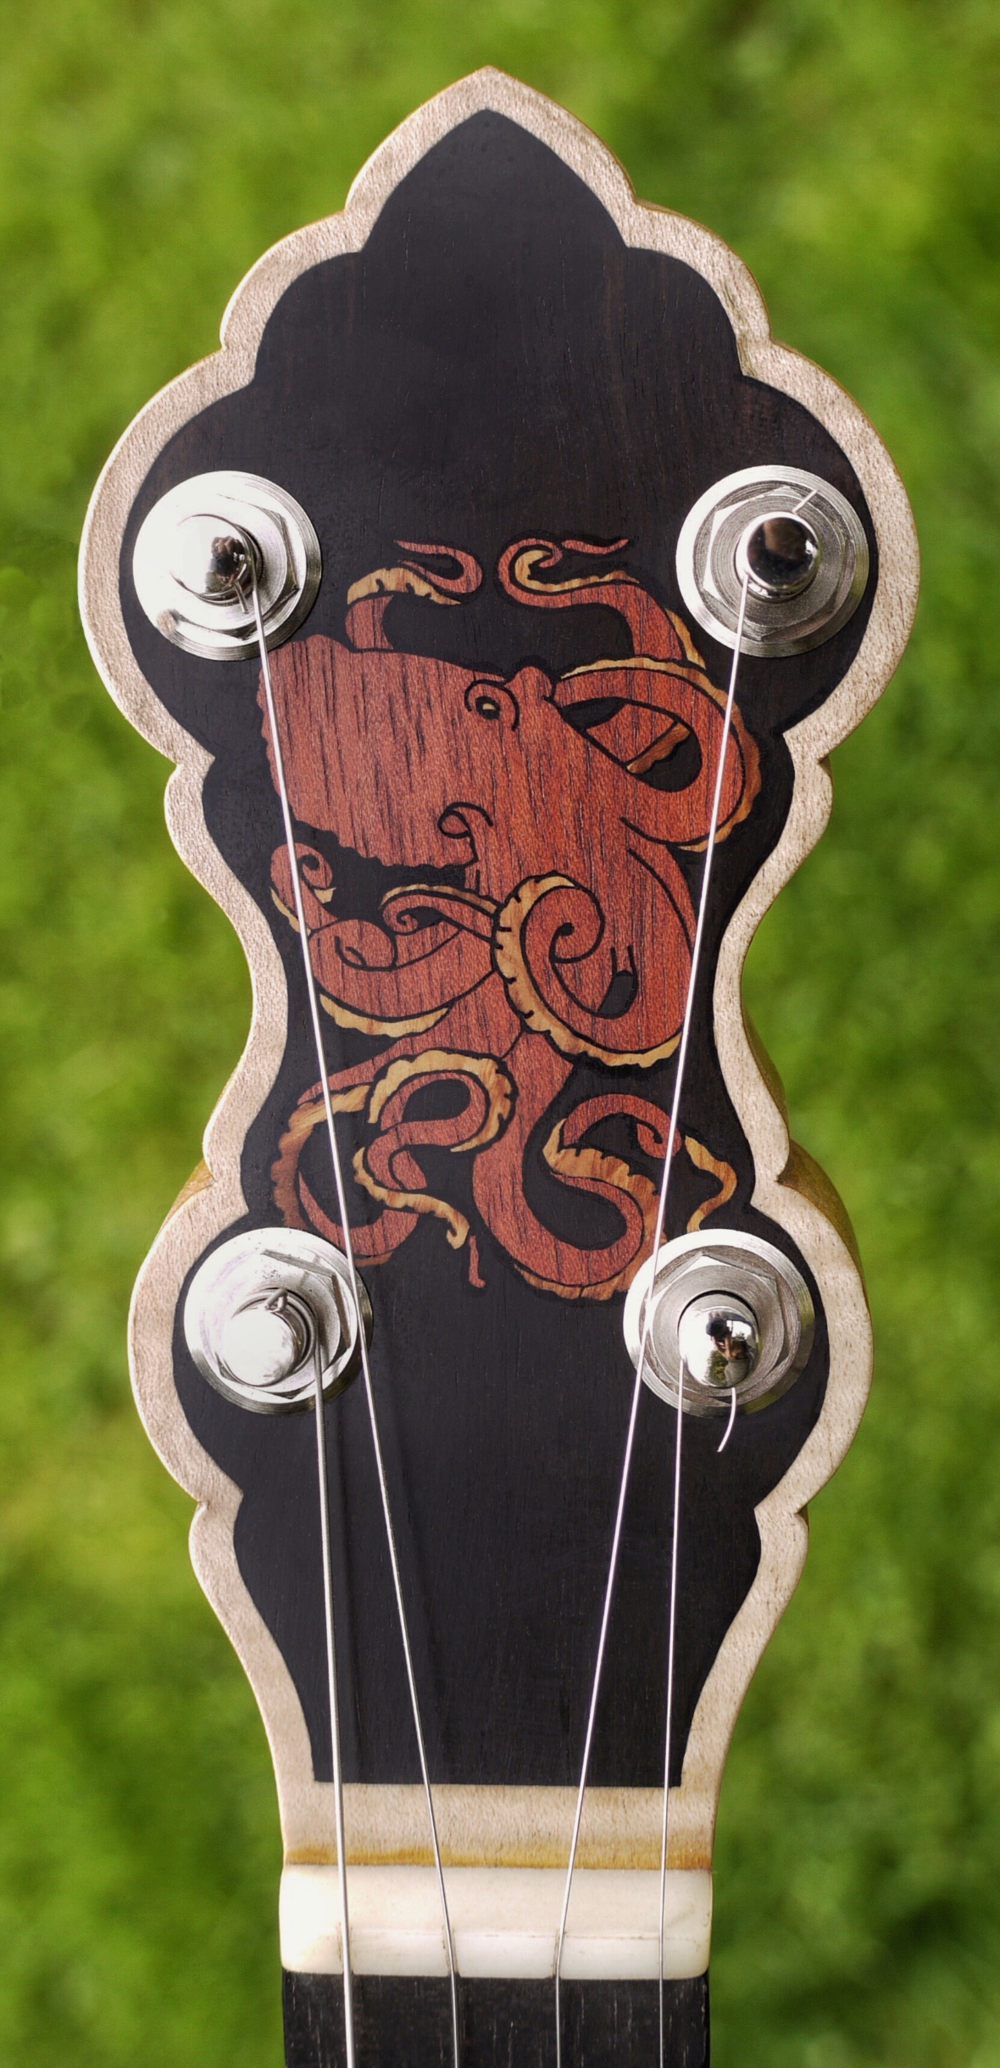 OCTOPUS BANJO HEADSTOCK